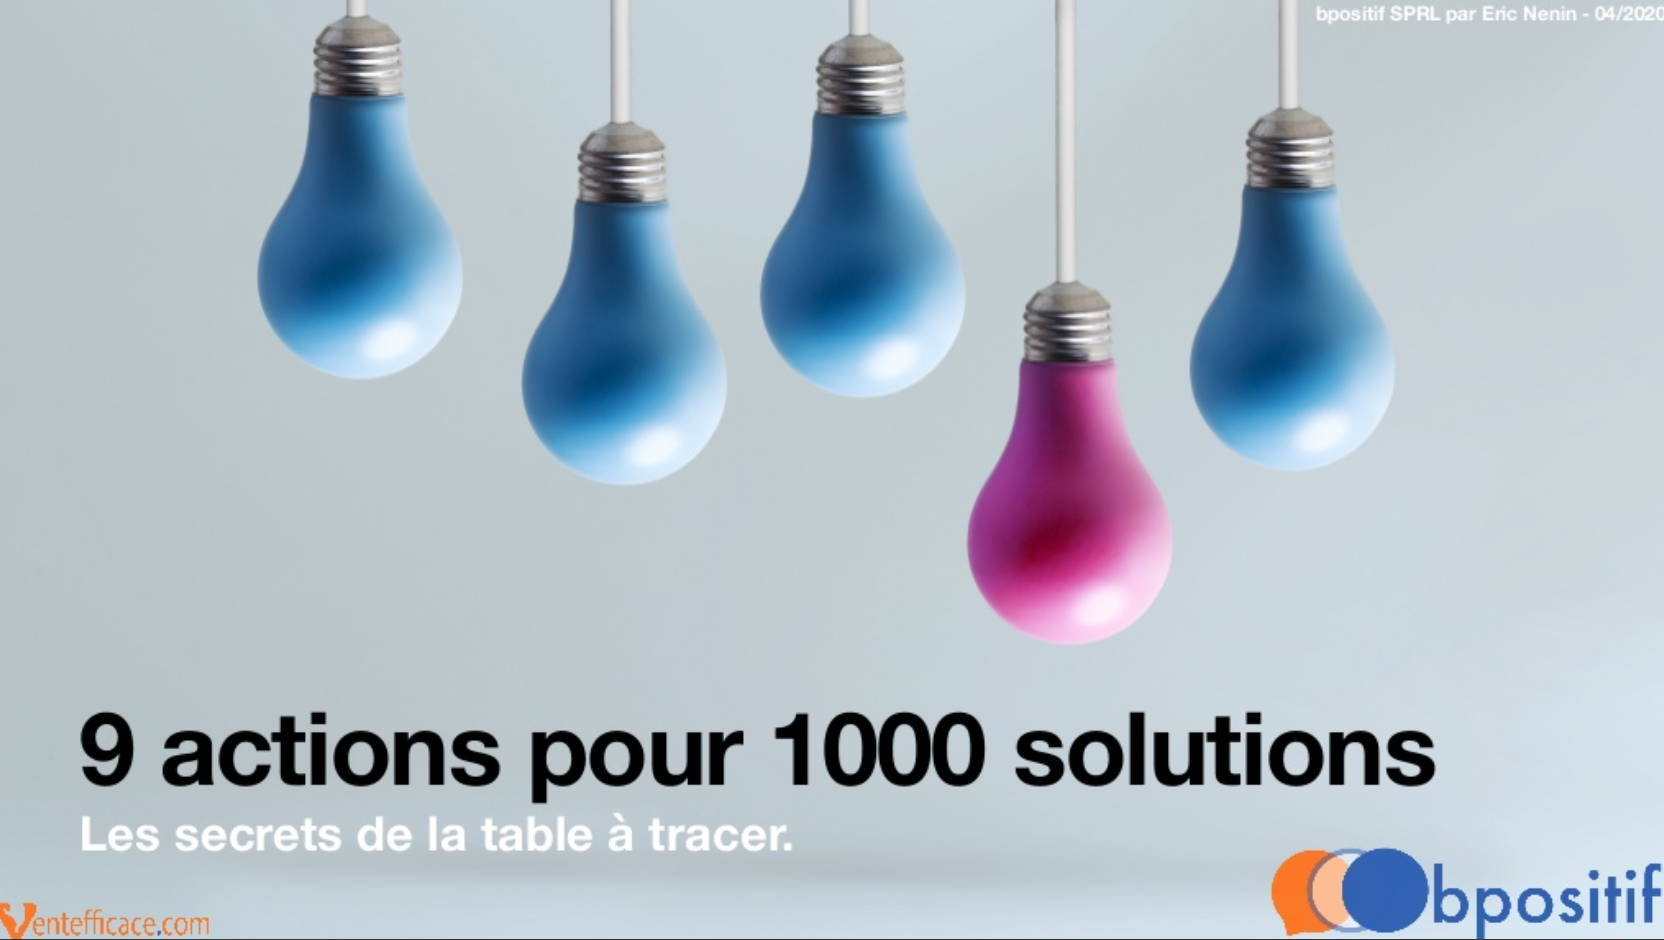 9 actions pour 1000 solutions